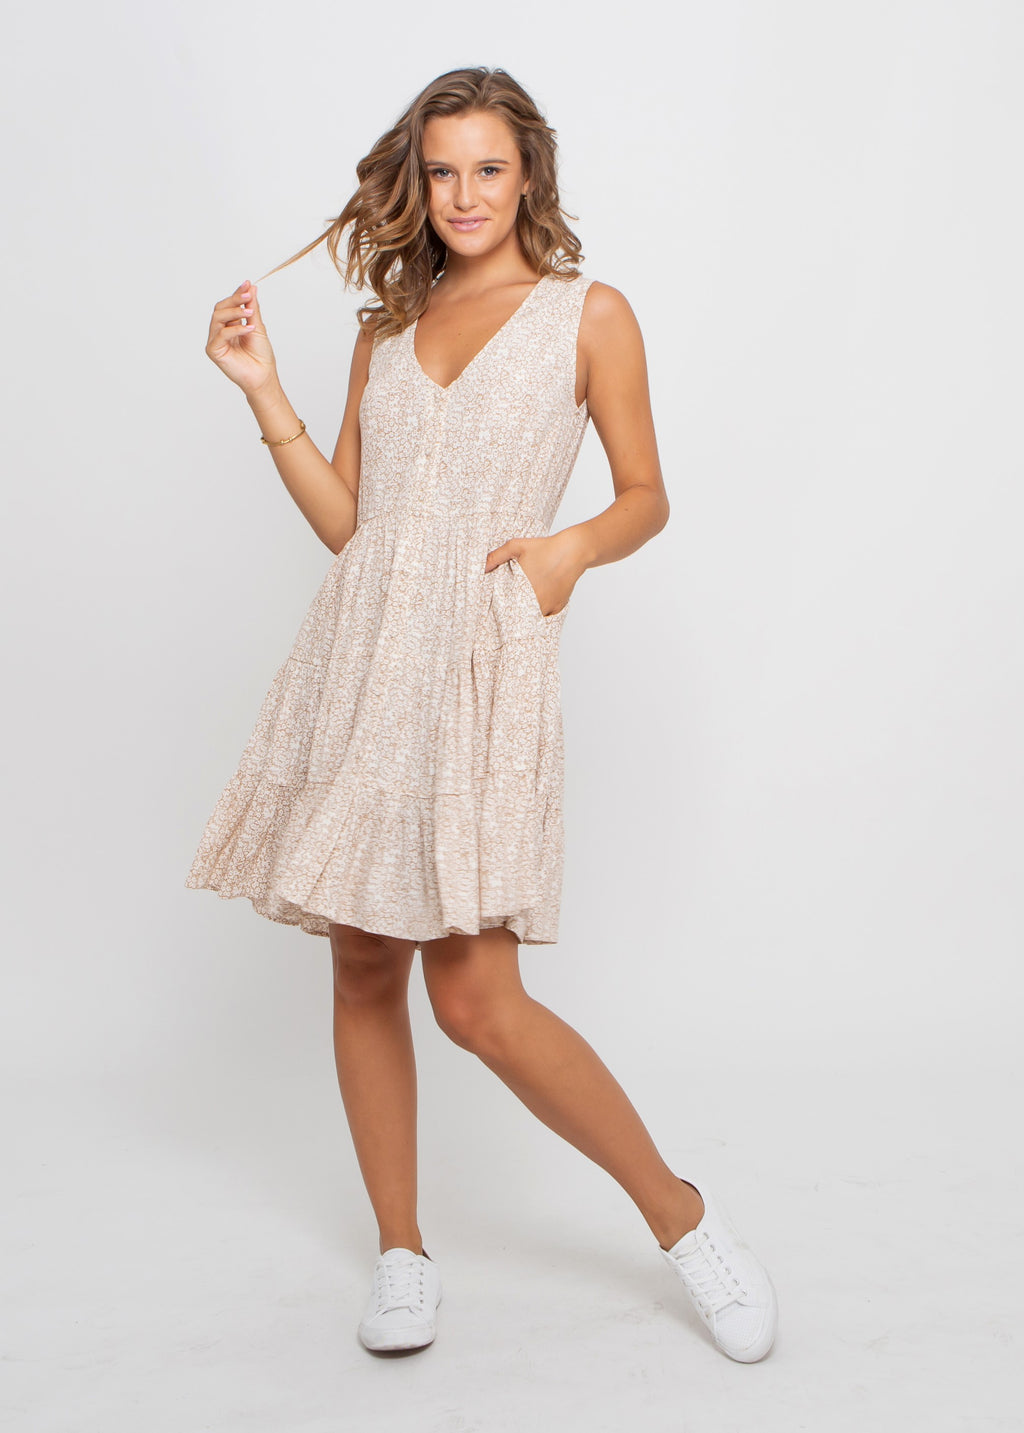 MEI DRESS - BEIGE PRINT